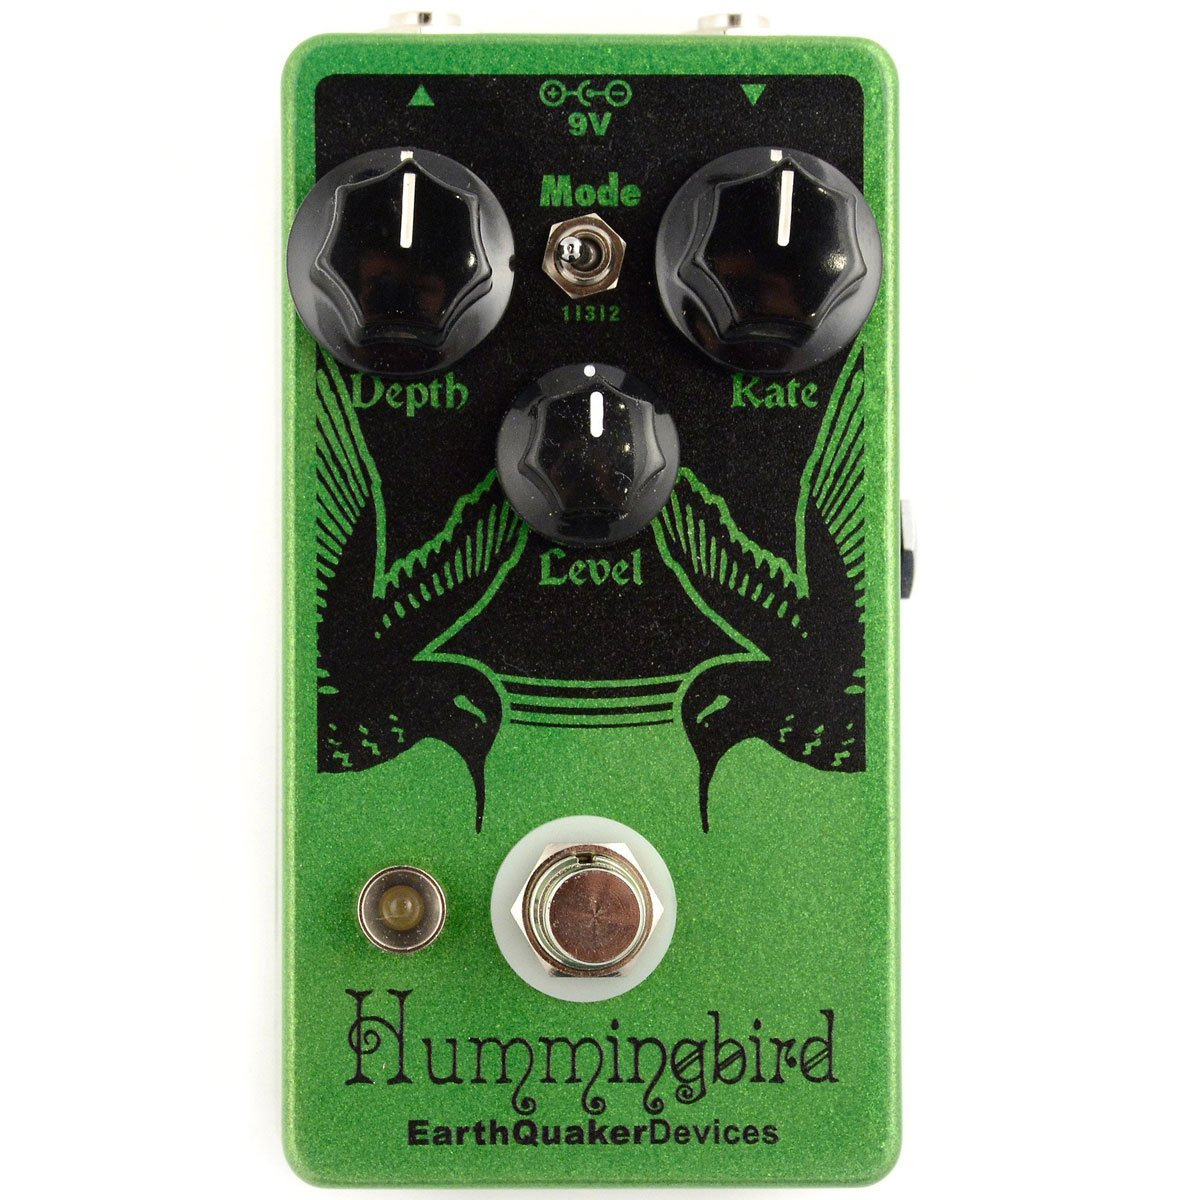 Earthquaker Devices Hummingbird V3 Repeat Percussion | Lucky Fret Music Co.